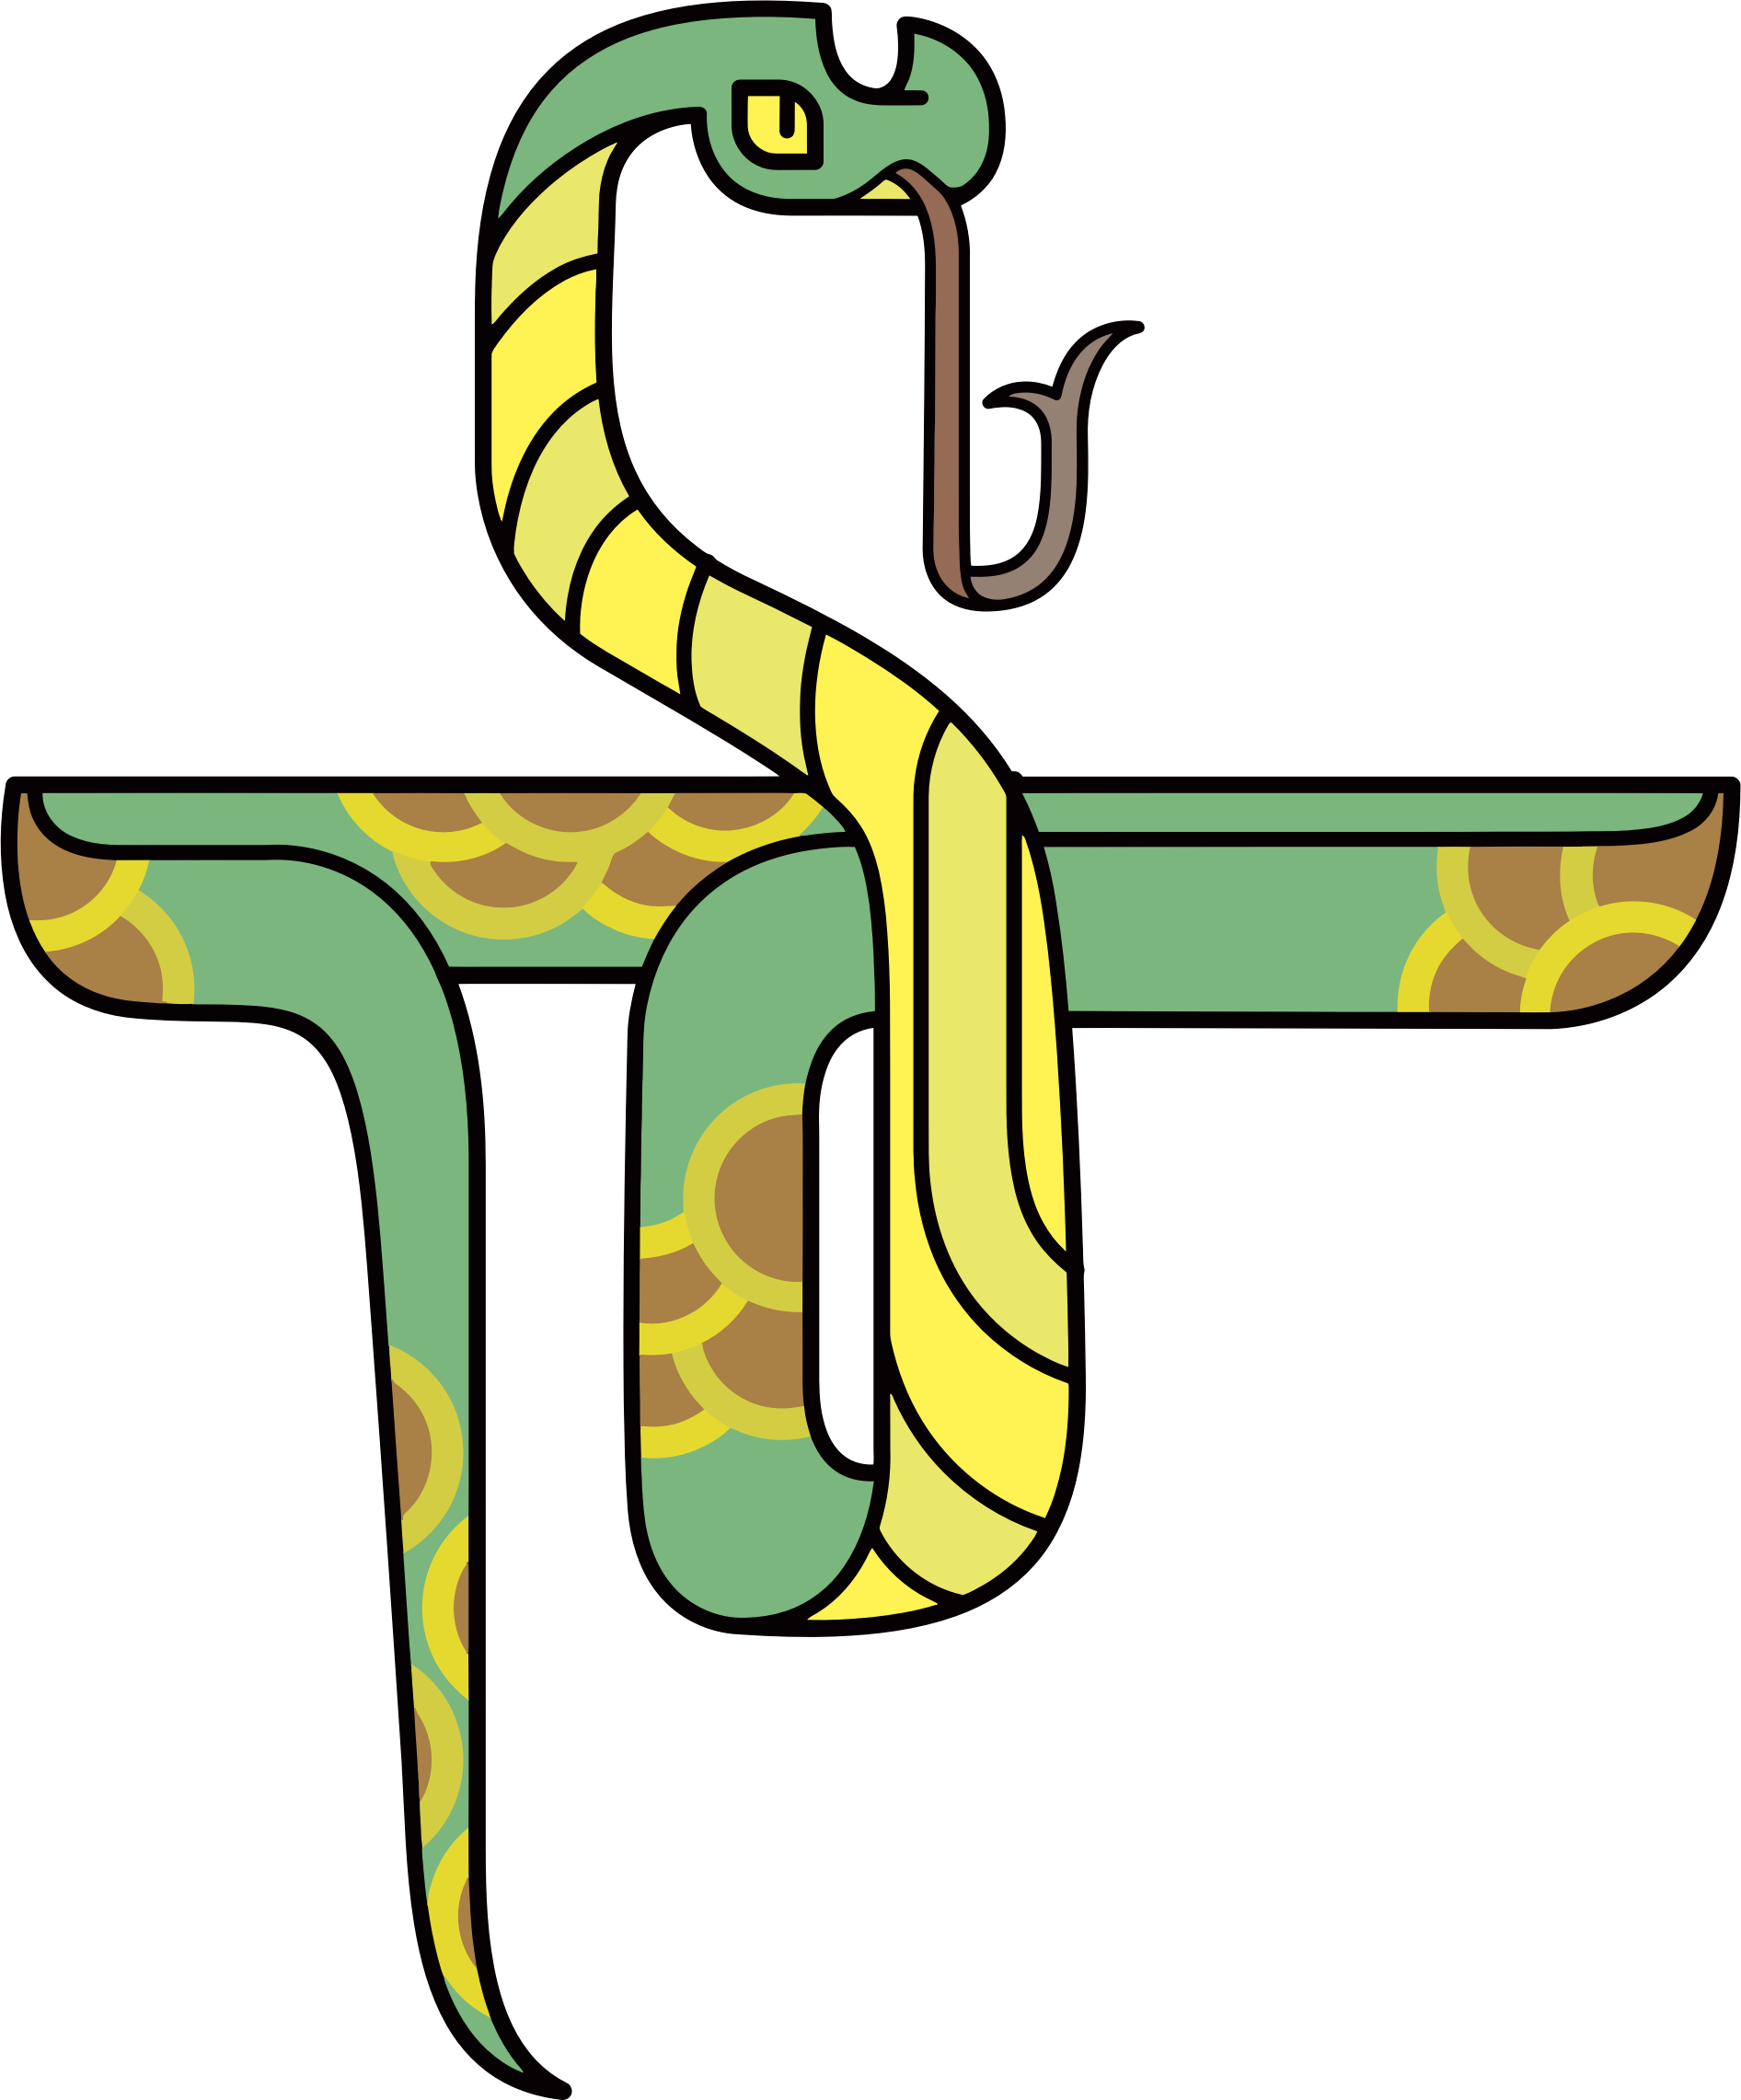 Snakes cliparts shop of. Snake clipart serpent